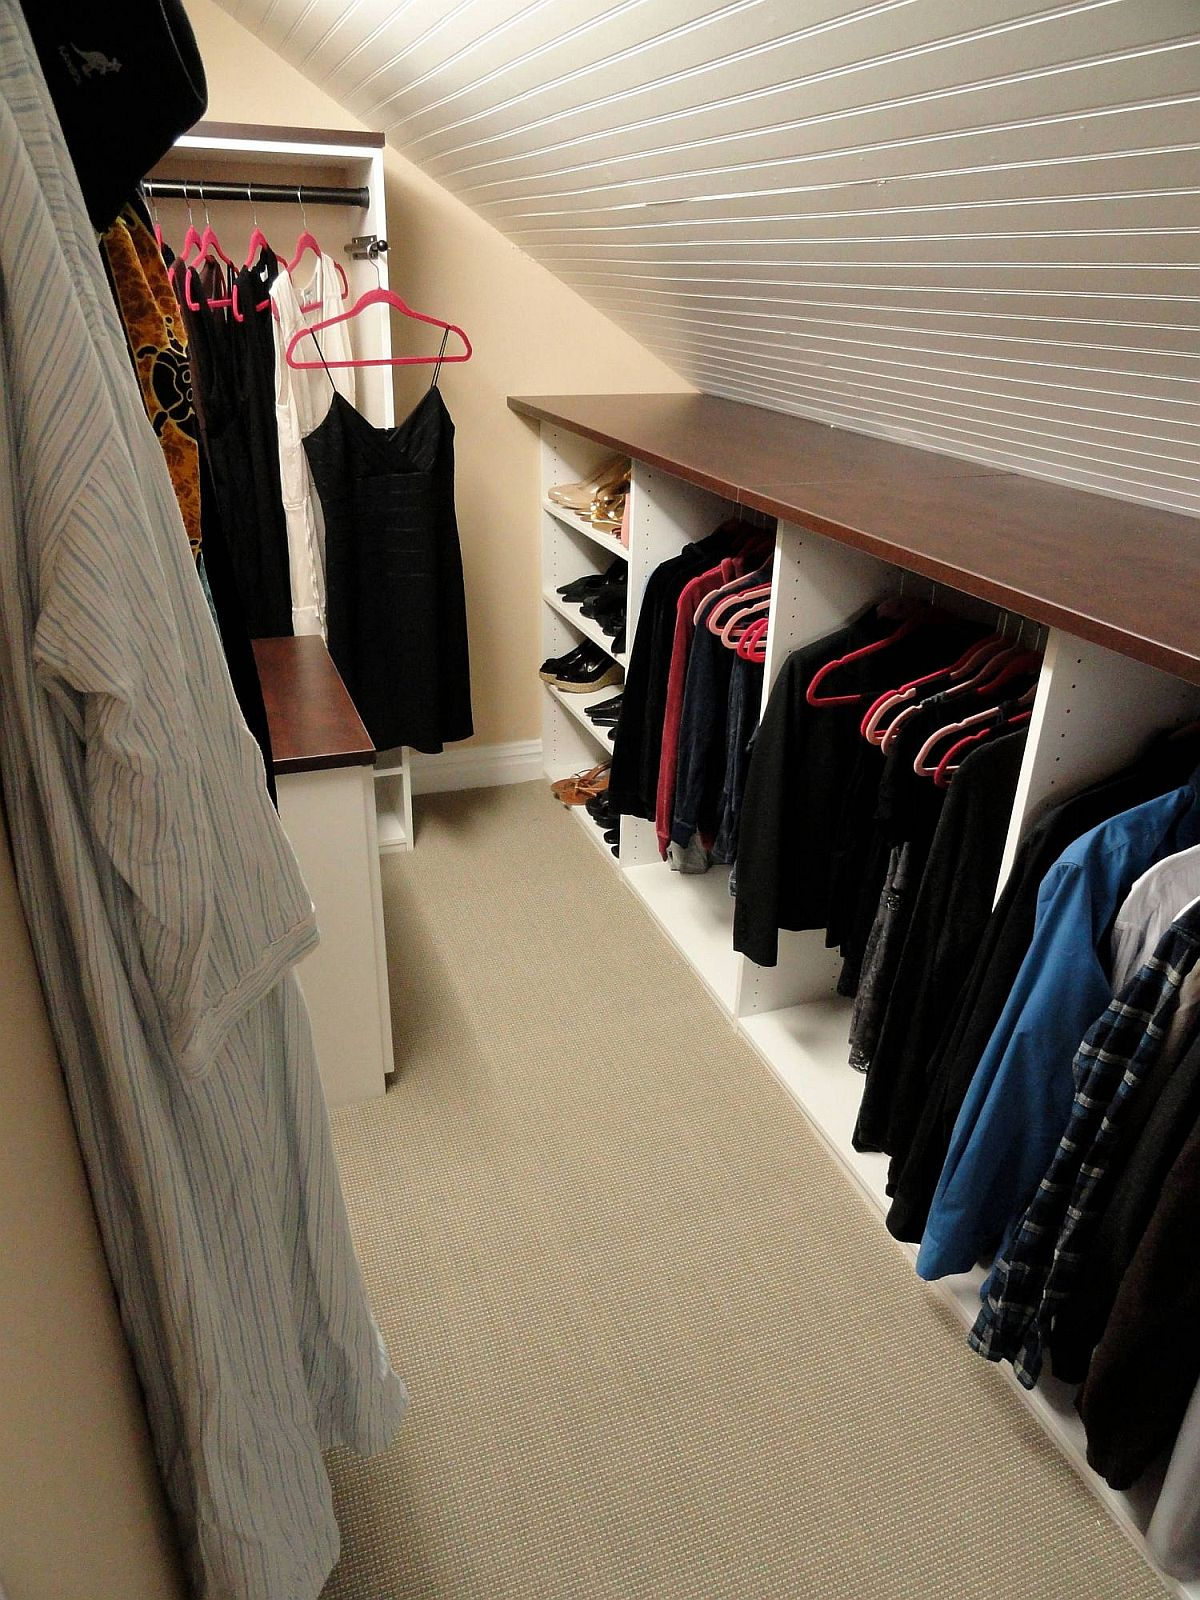 Even the modest attic bedroom can have a dashing closet of its own!